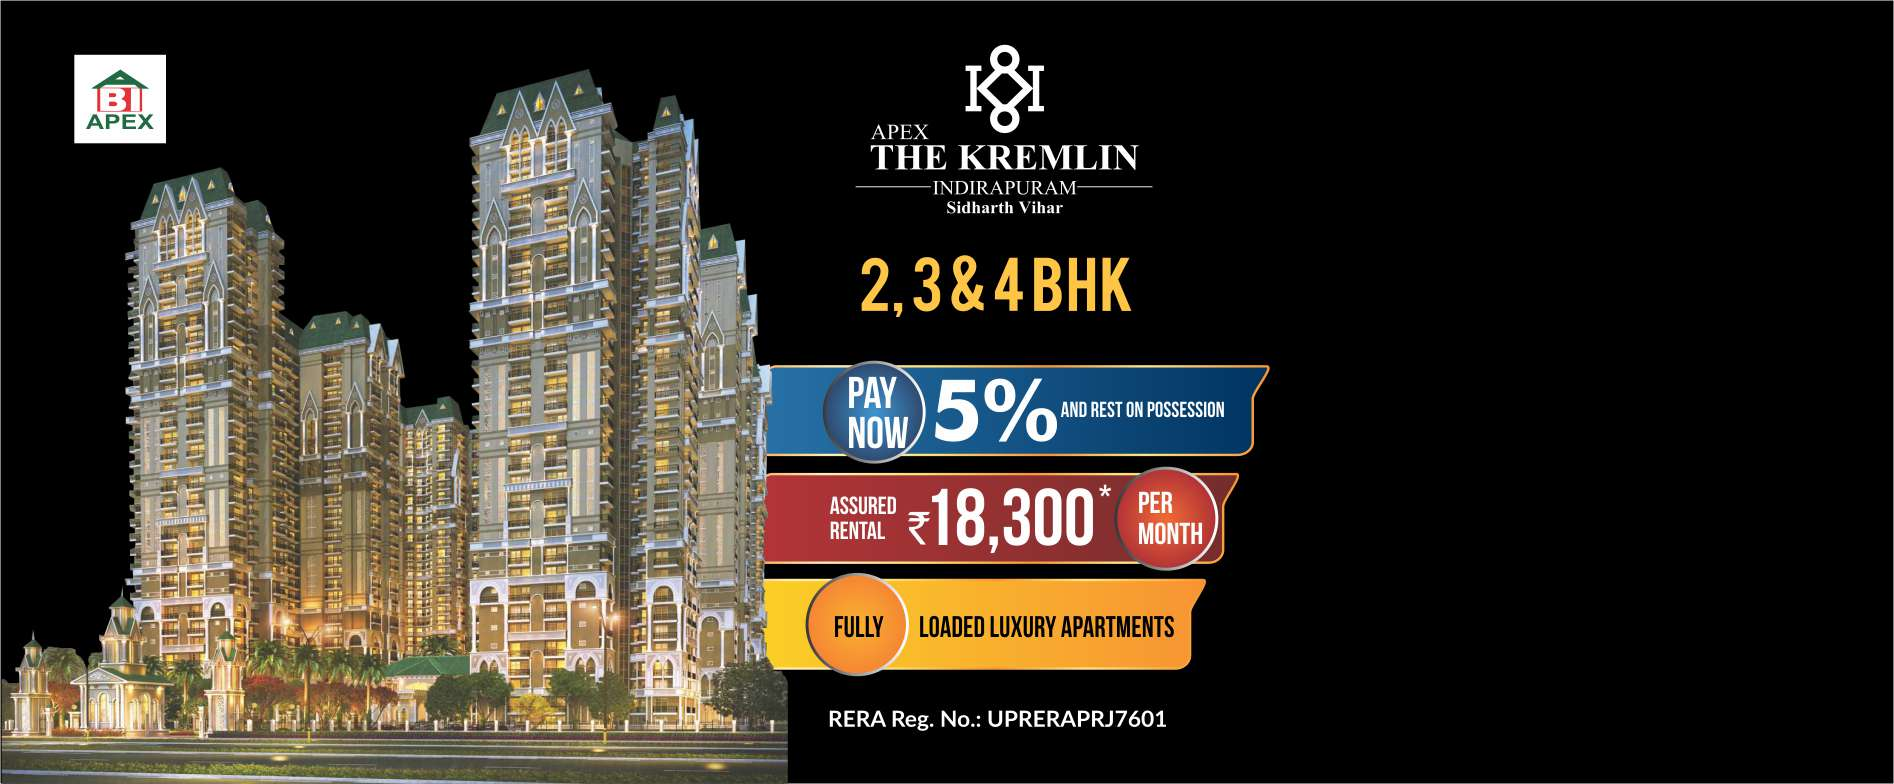 Apex The Kremlin Indrapuram for booking call us: +918010654321